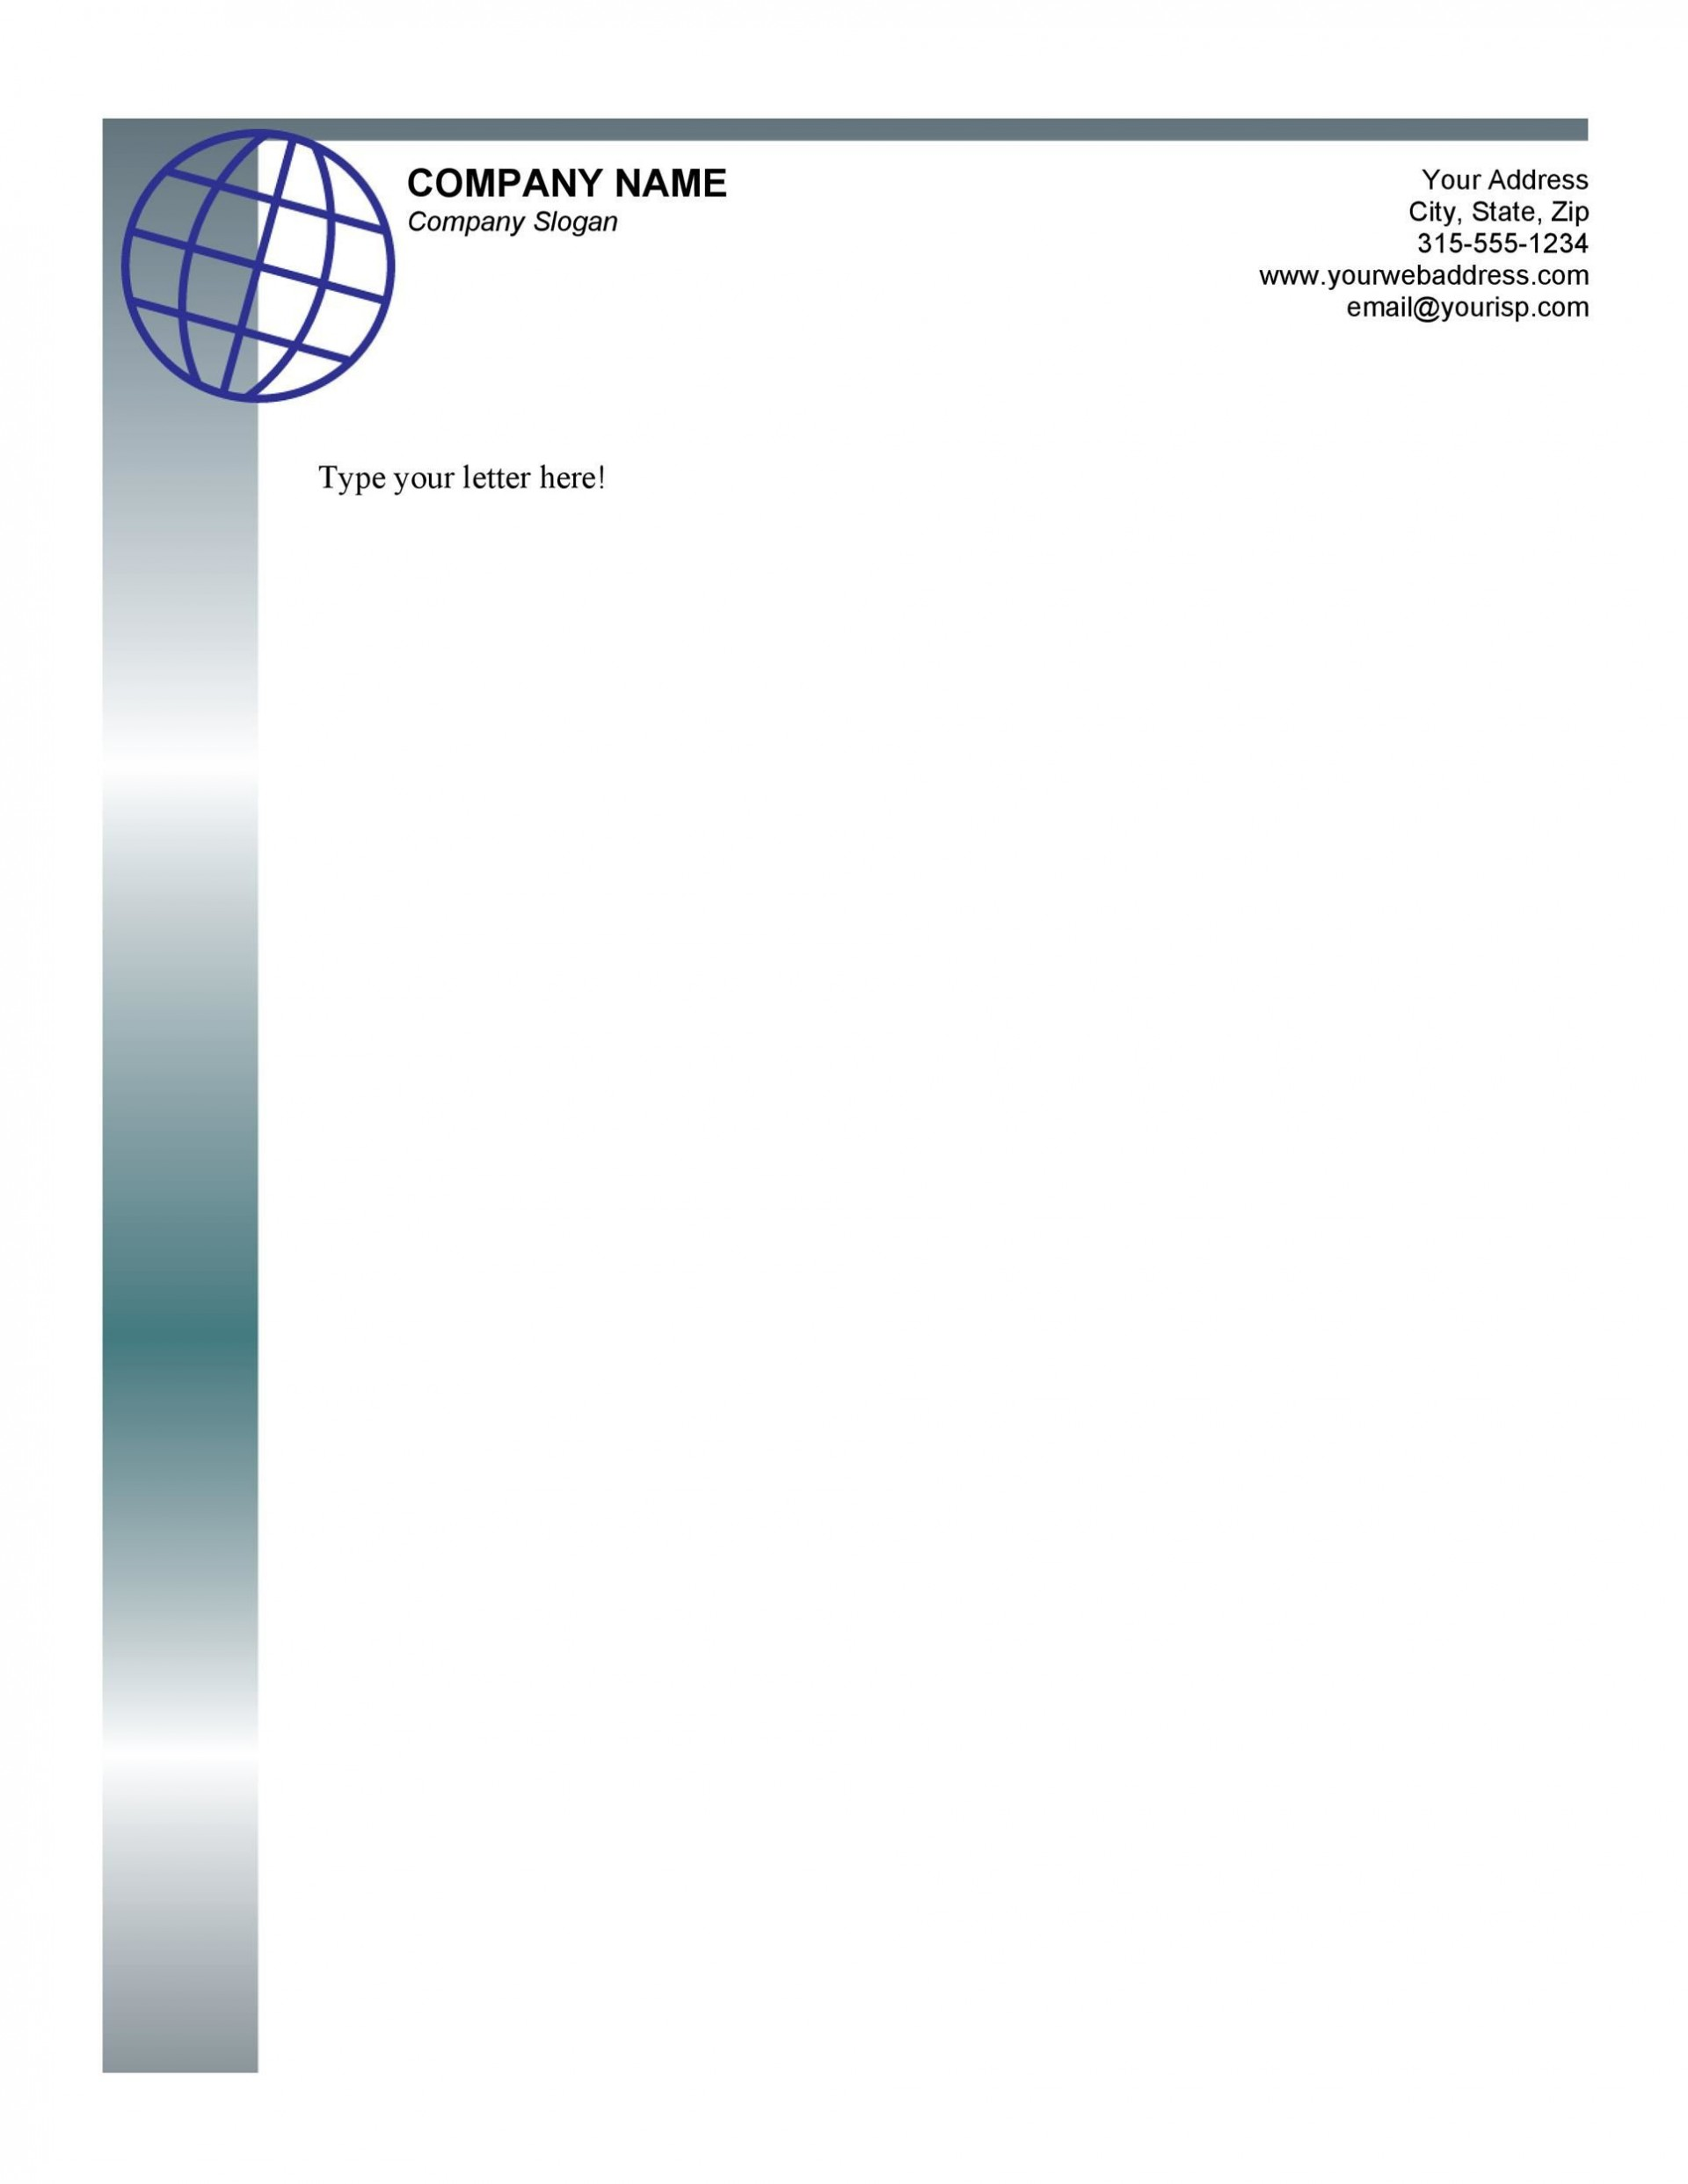 005 Fearsome Letterhead Format Excel Free Download Concept 1920